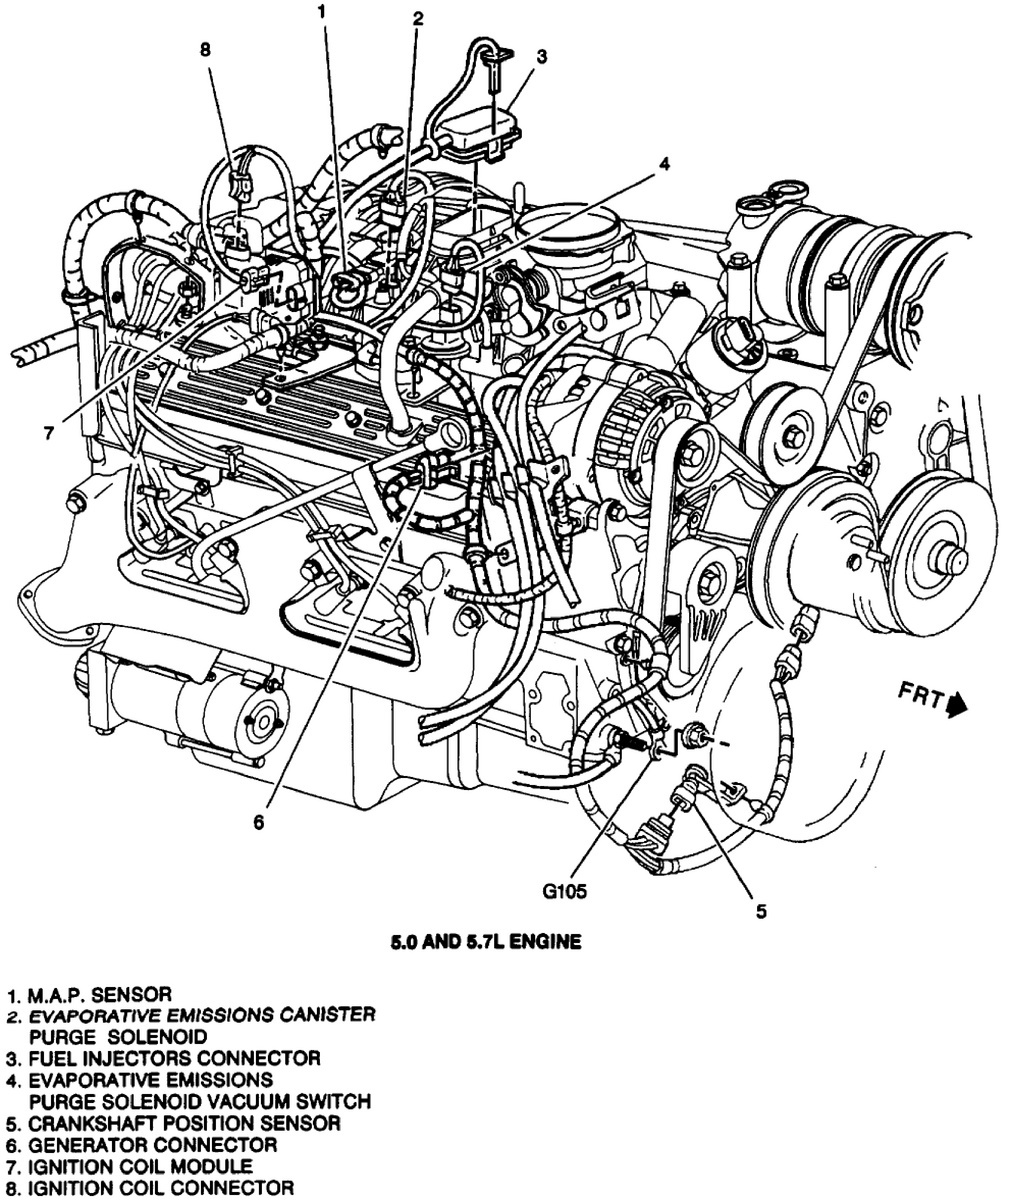 pic 6189694446580346251 1600x1200 silverado engine diagram wiring diagram data